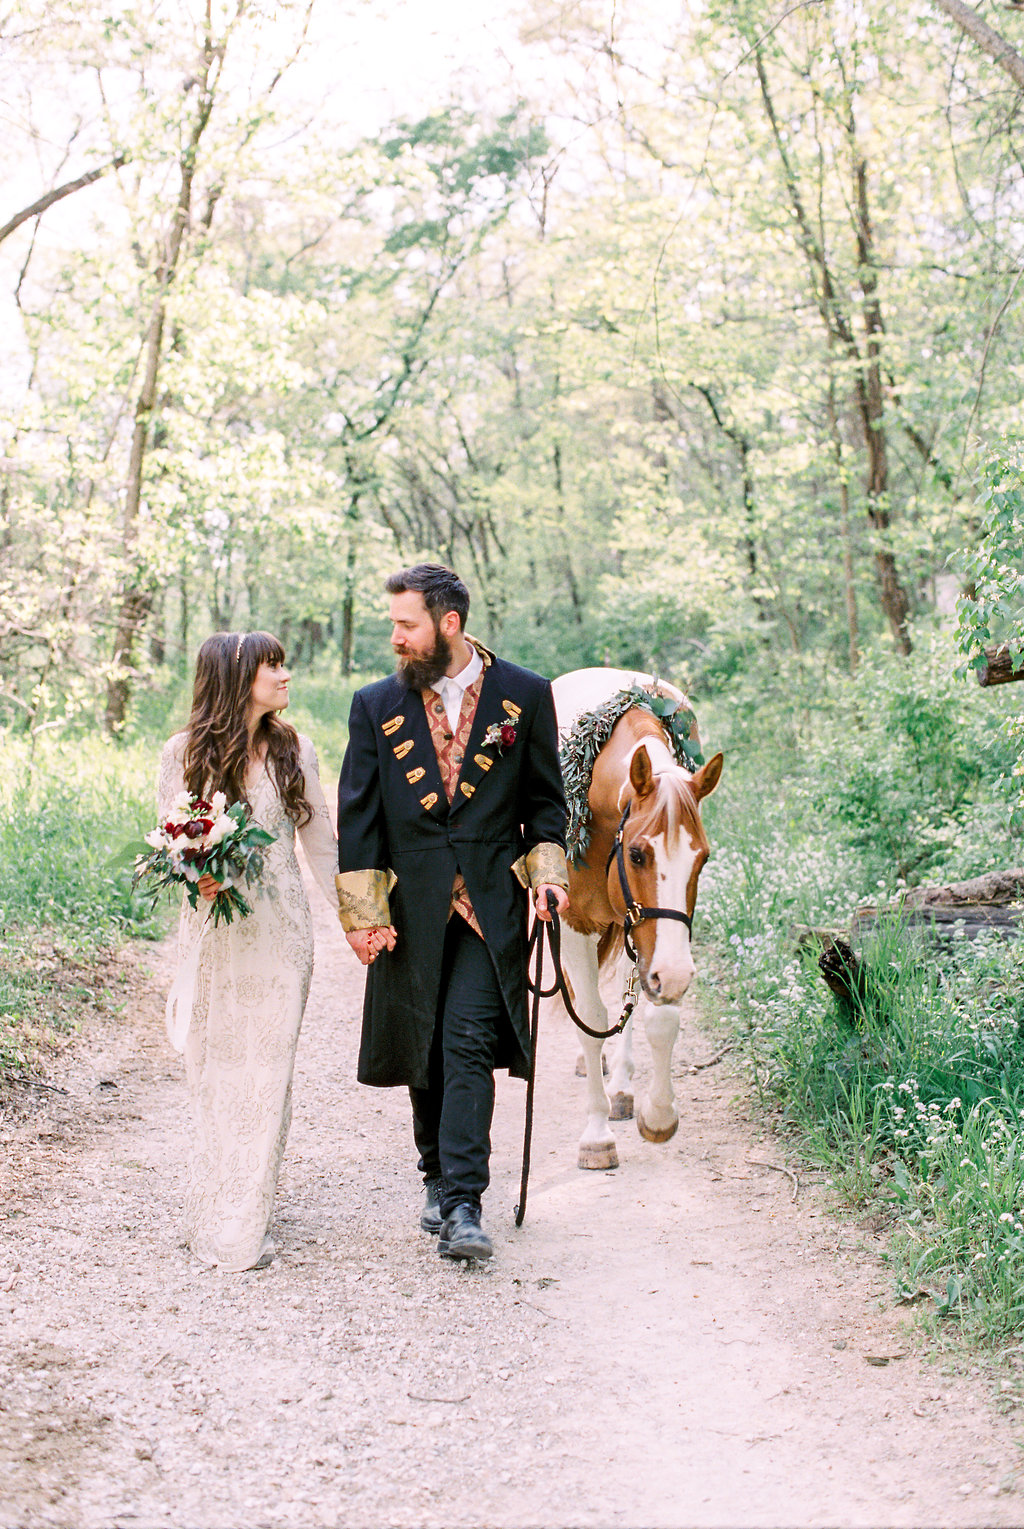 horses at weddings - photo by Laura Ann Miller Photography https://ruffledblog.com/royalty-inspired-wedding-ideas-at-a-castle